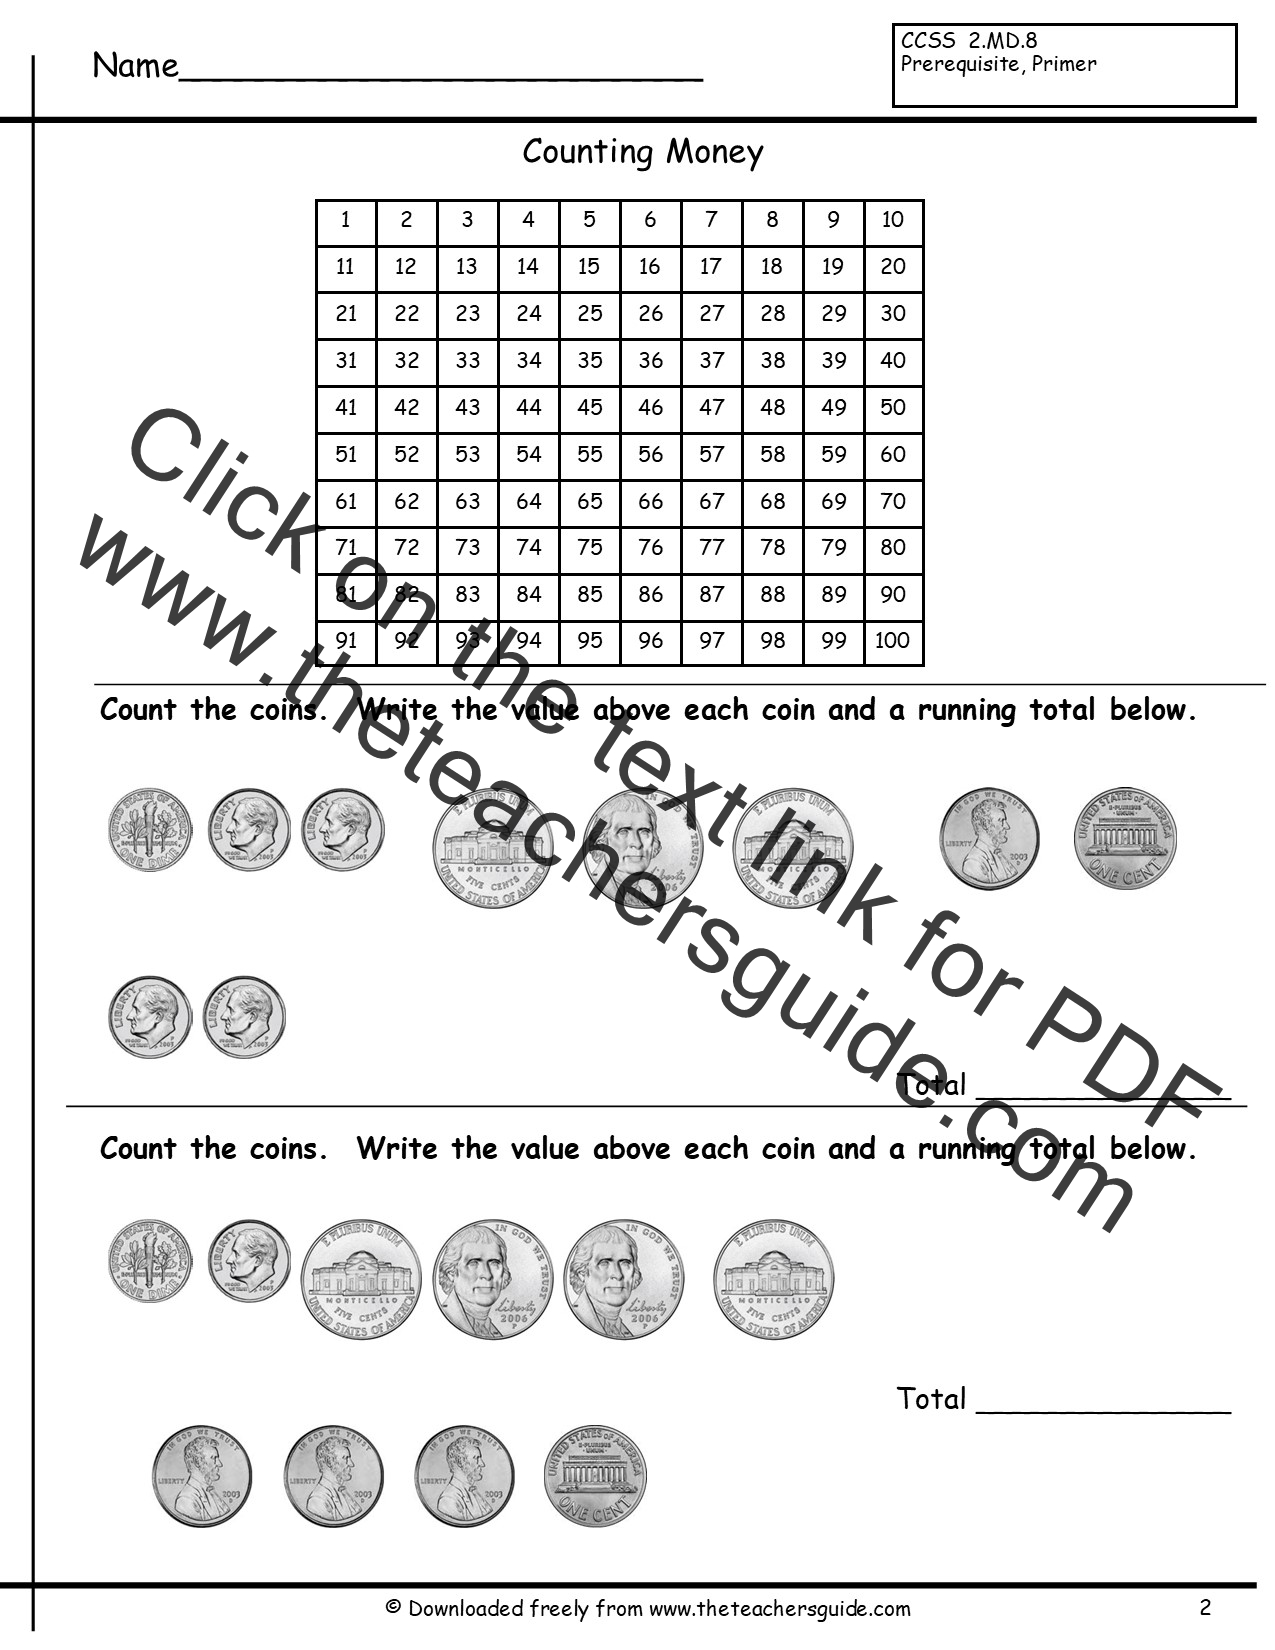 Adding Money Worksheet Ks1